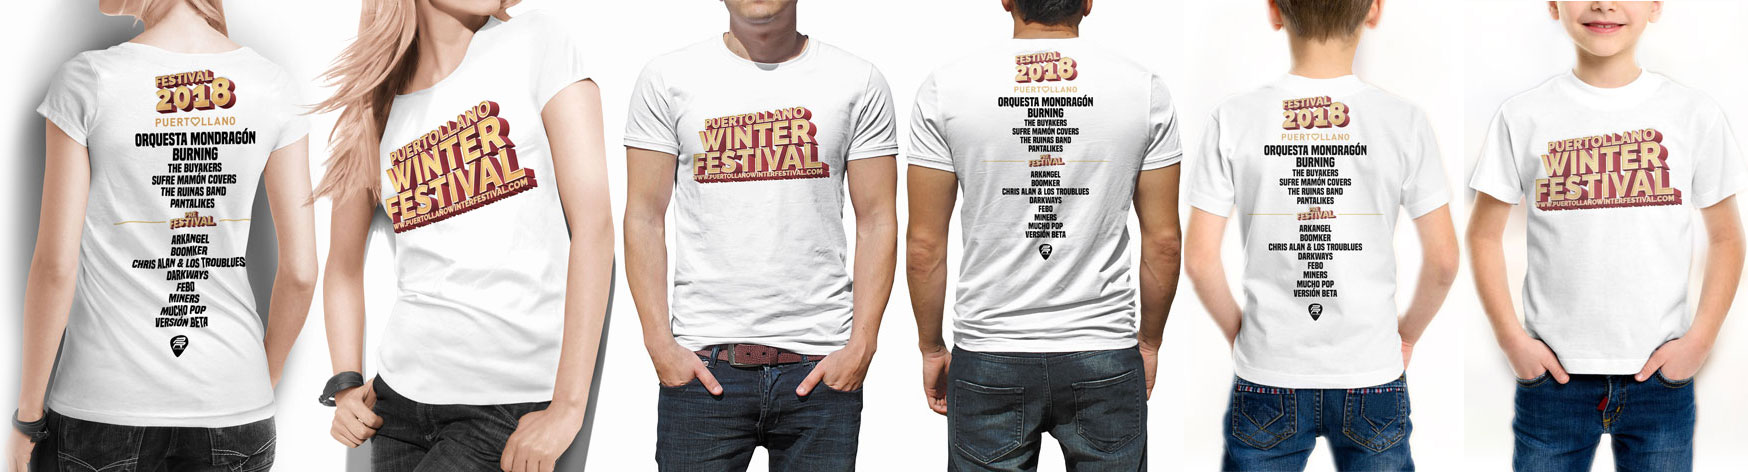 camiseta puertollano winter festival 2018